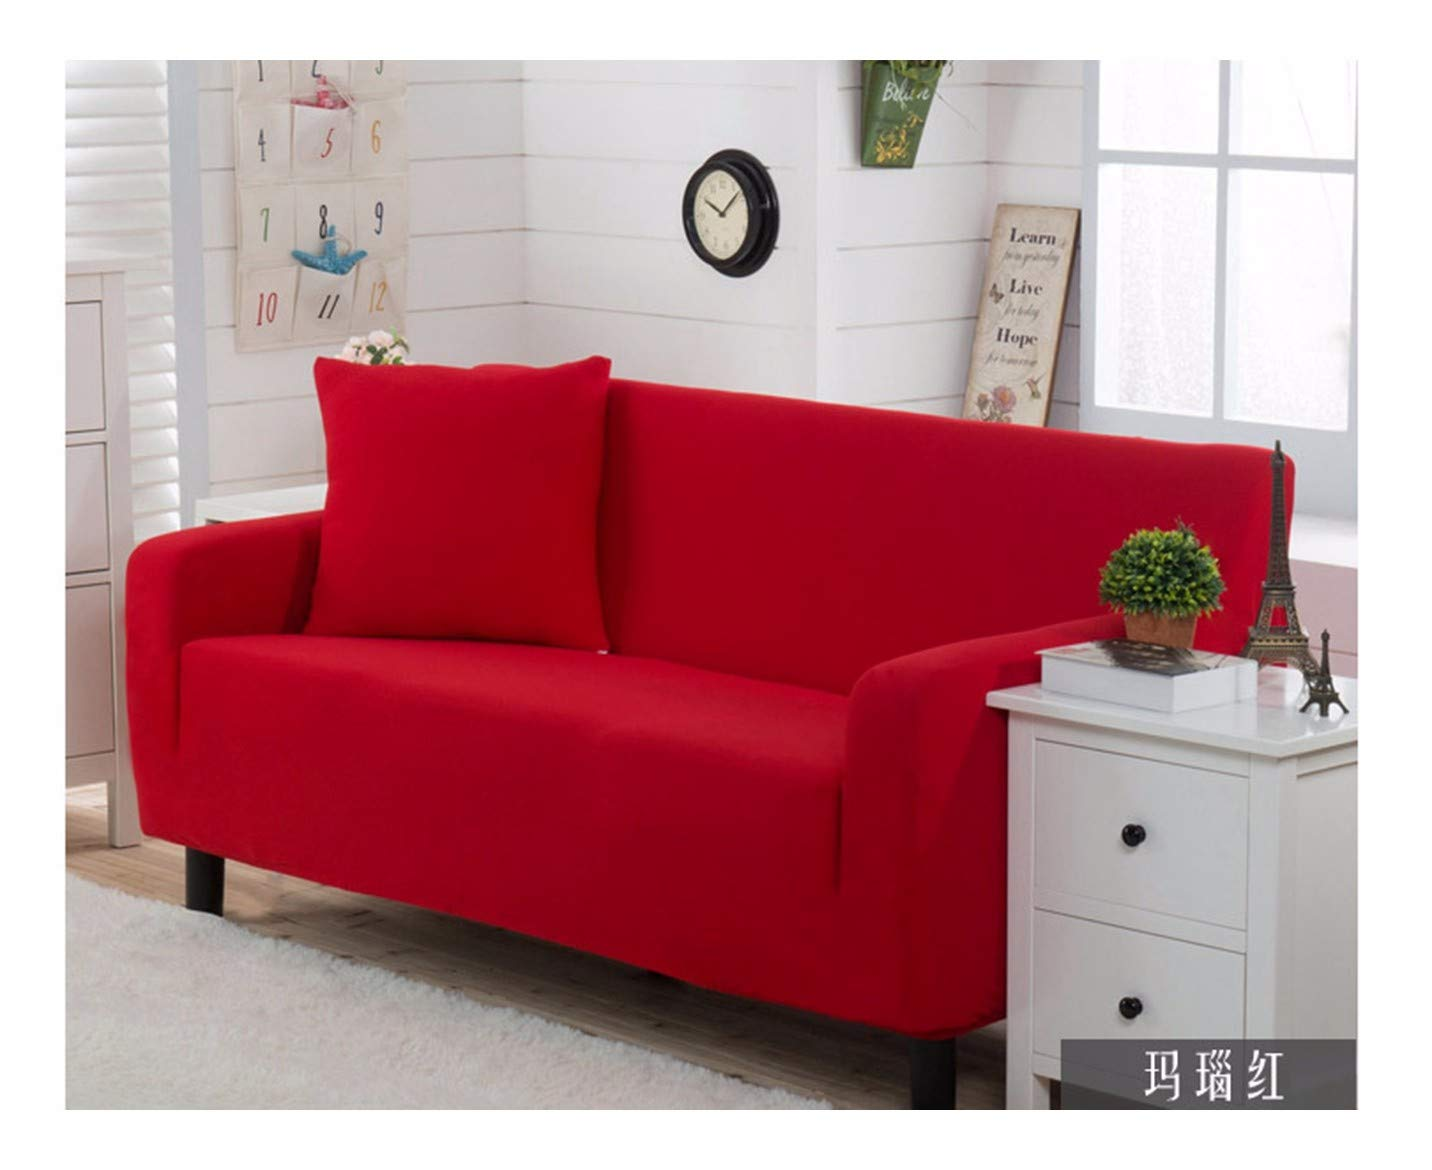 3seat VGUYFUYH Red Thickened Knitted Sofa Cover Polyester Full Package Elasticity Home Universal Sofa Cover Simple Fashion One Set Durable Dust-Proof Pet Dog Predective Cover,3Seat